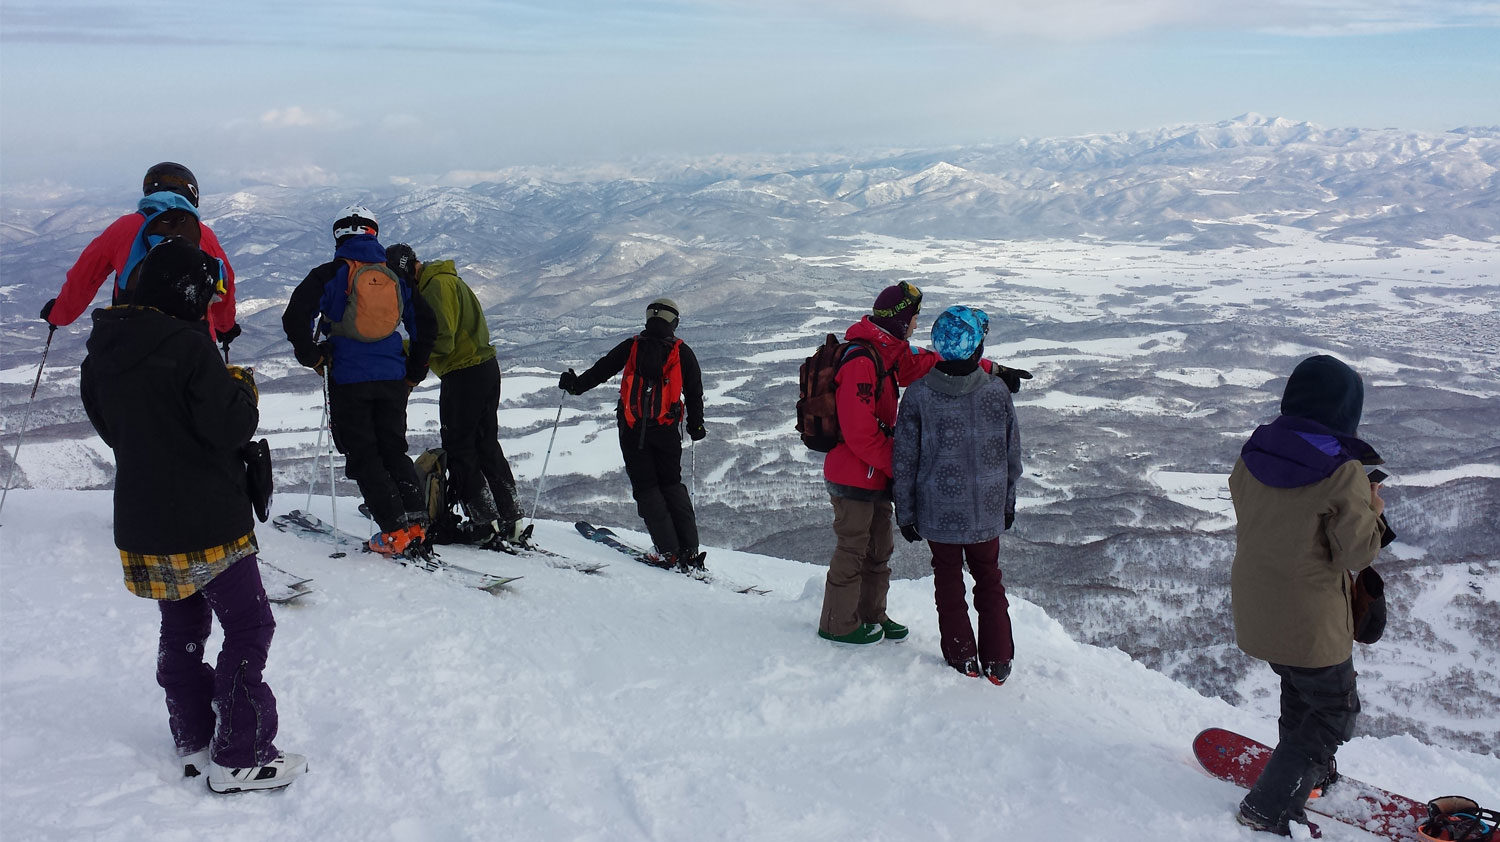 Backcountry skiing in Japan: First timer's guide